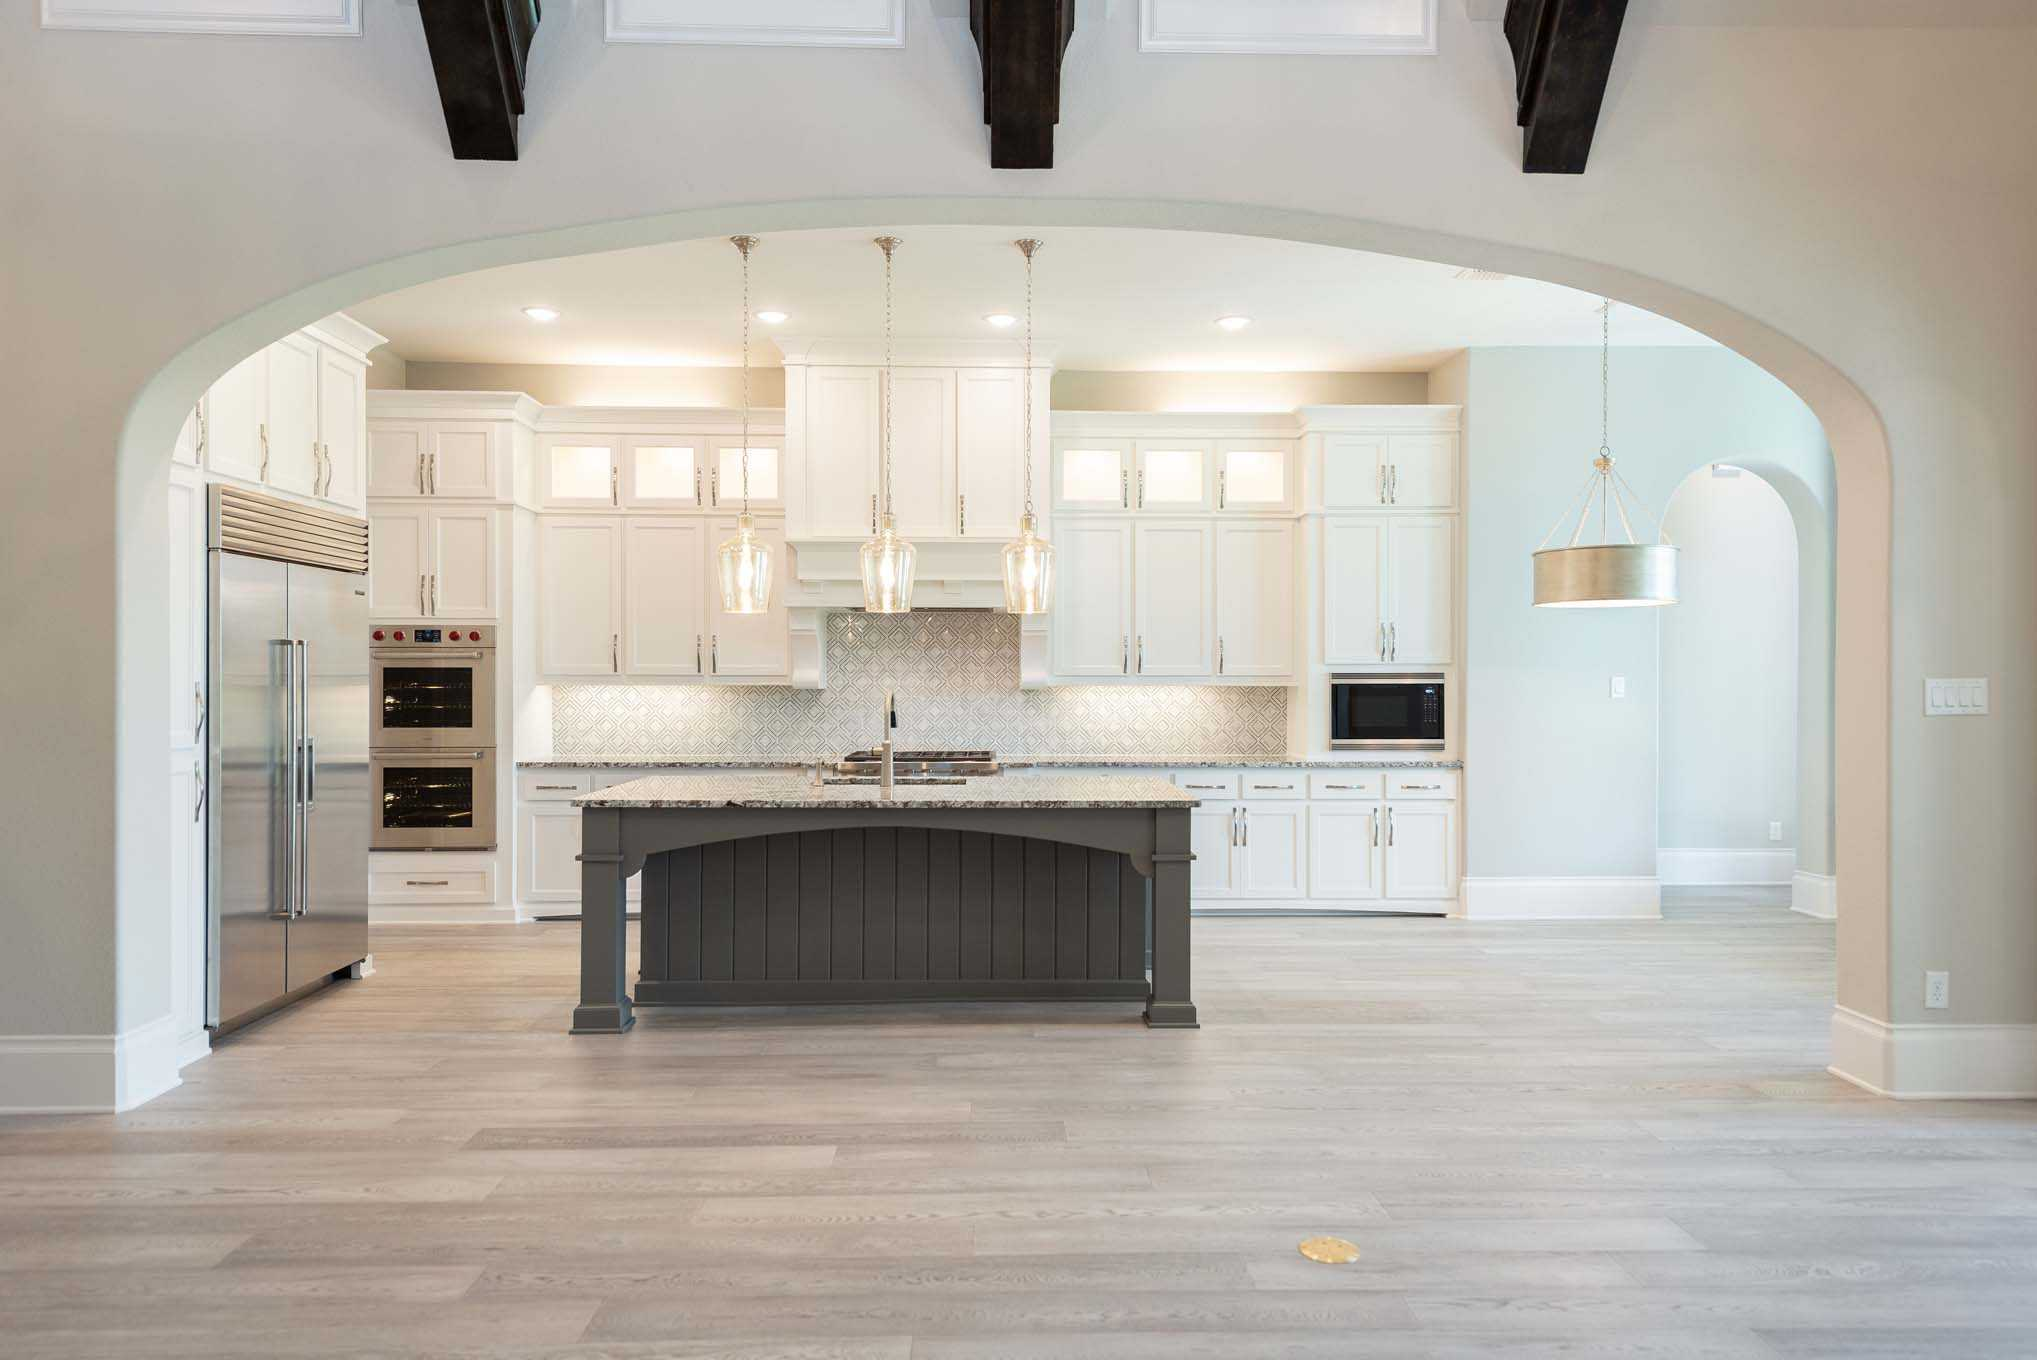 Kitchen featured in the Plan 6011 By Huntington Homes in Dallas, TX